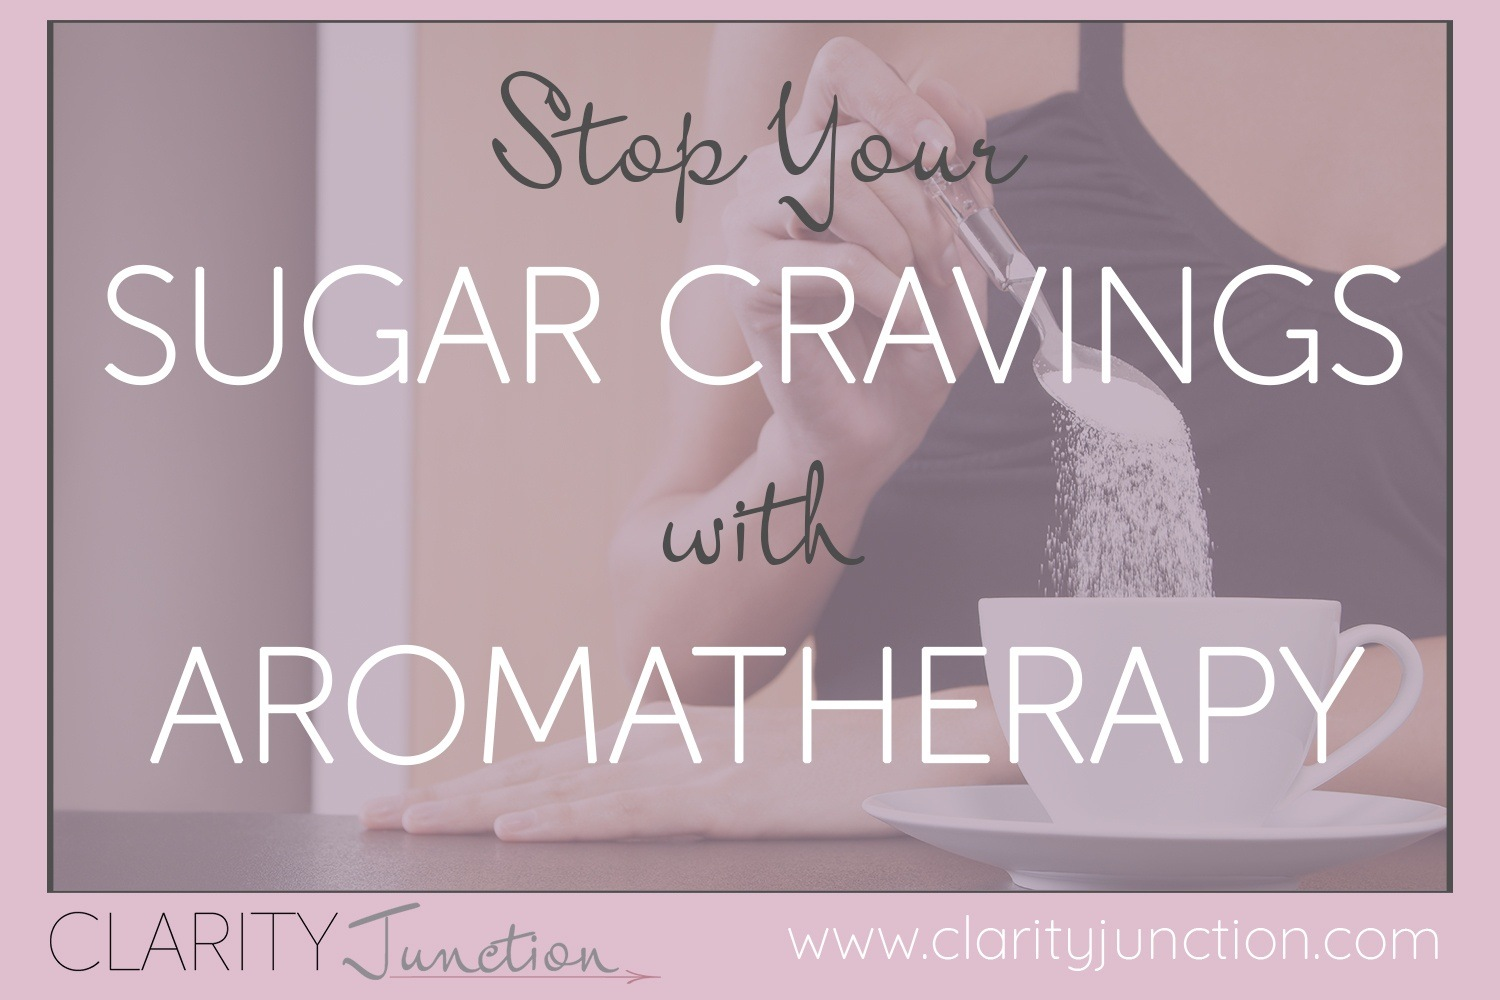 Stop Your Sugar Cravings with Aromatherapy